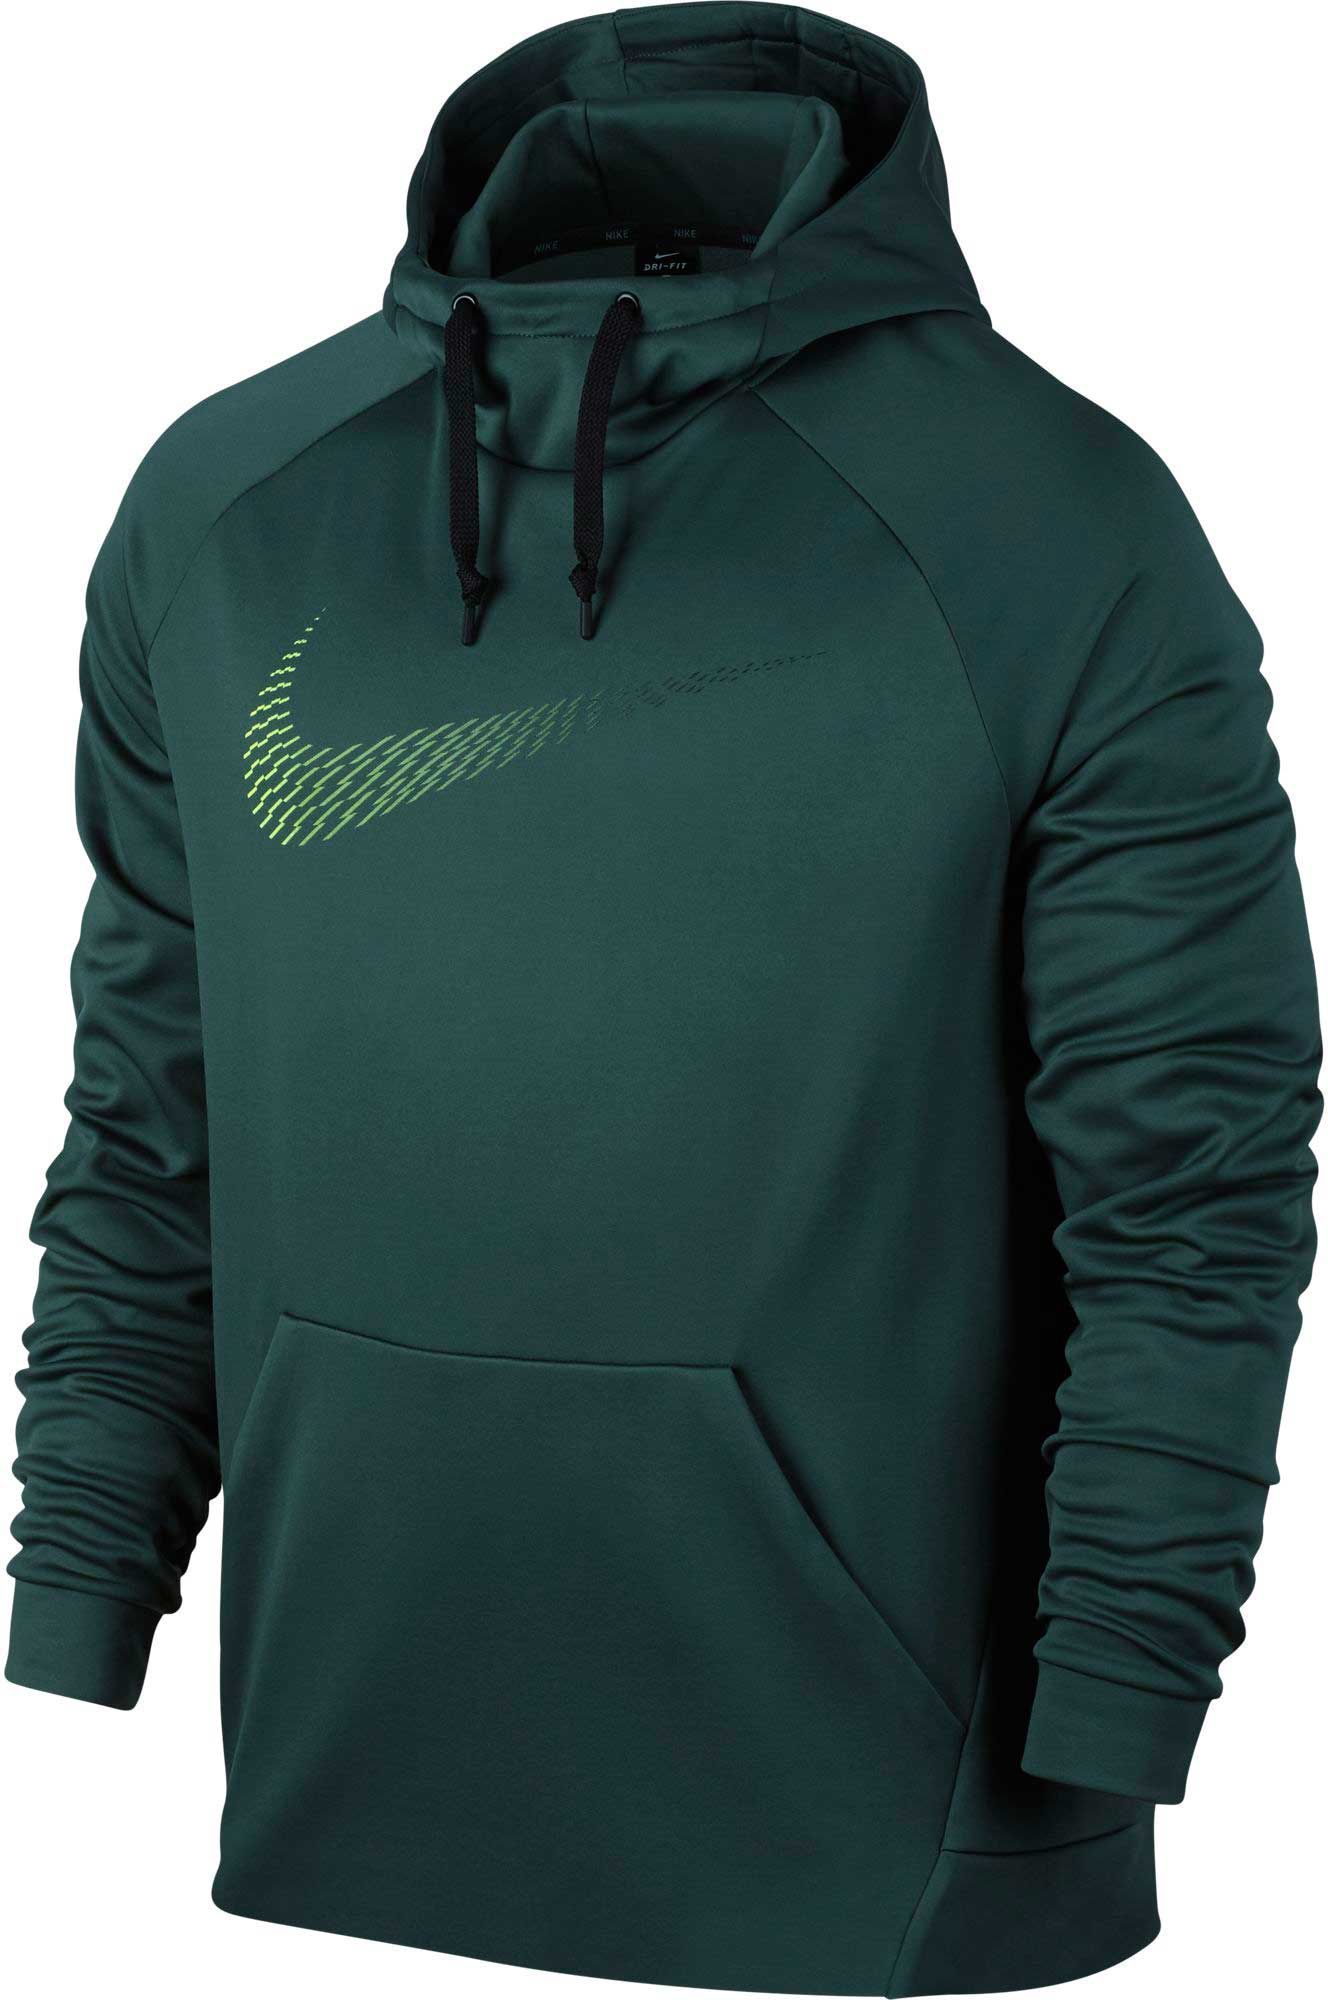 Men's Hoodies & Sweatshirts | Price Match Guarantee at DICK'S